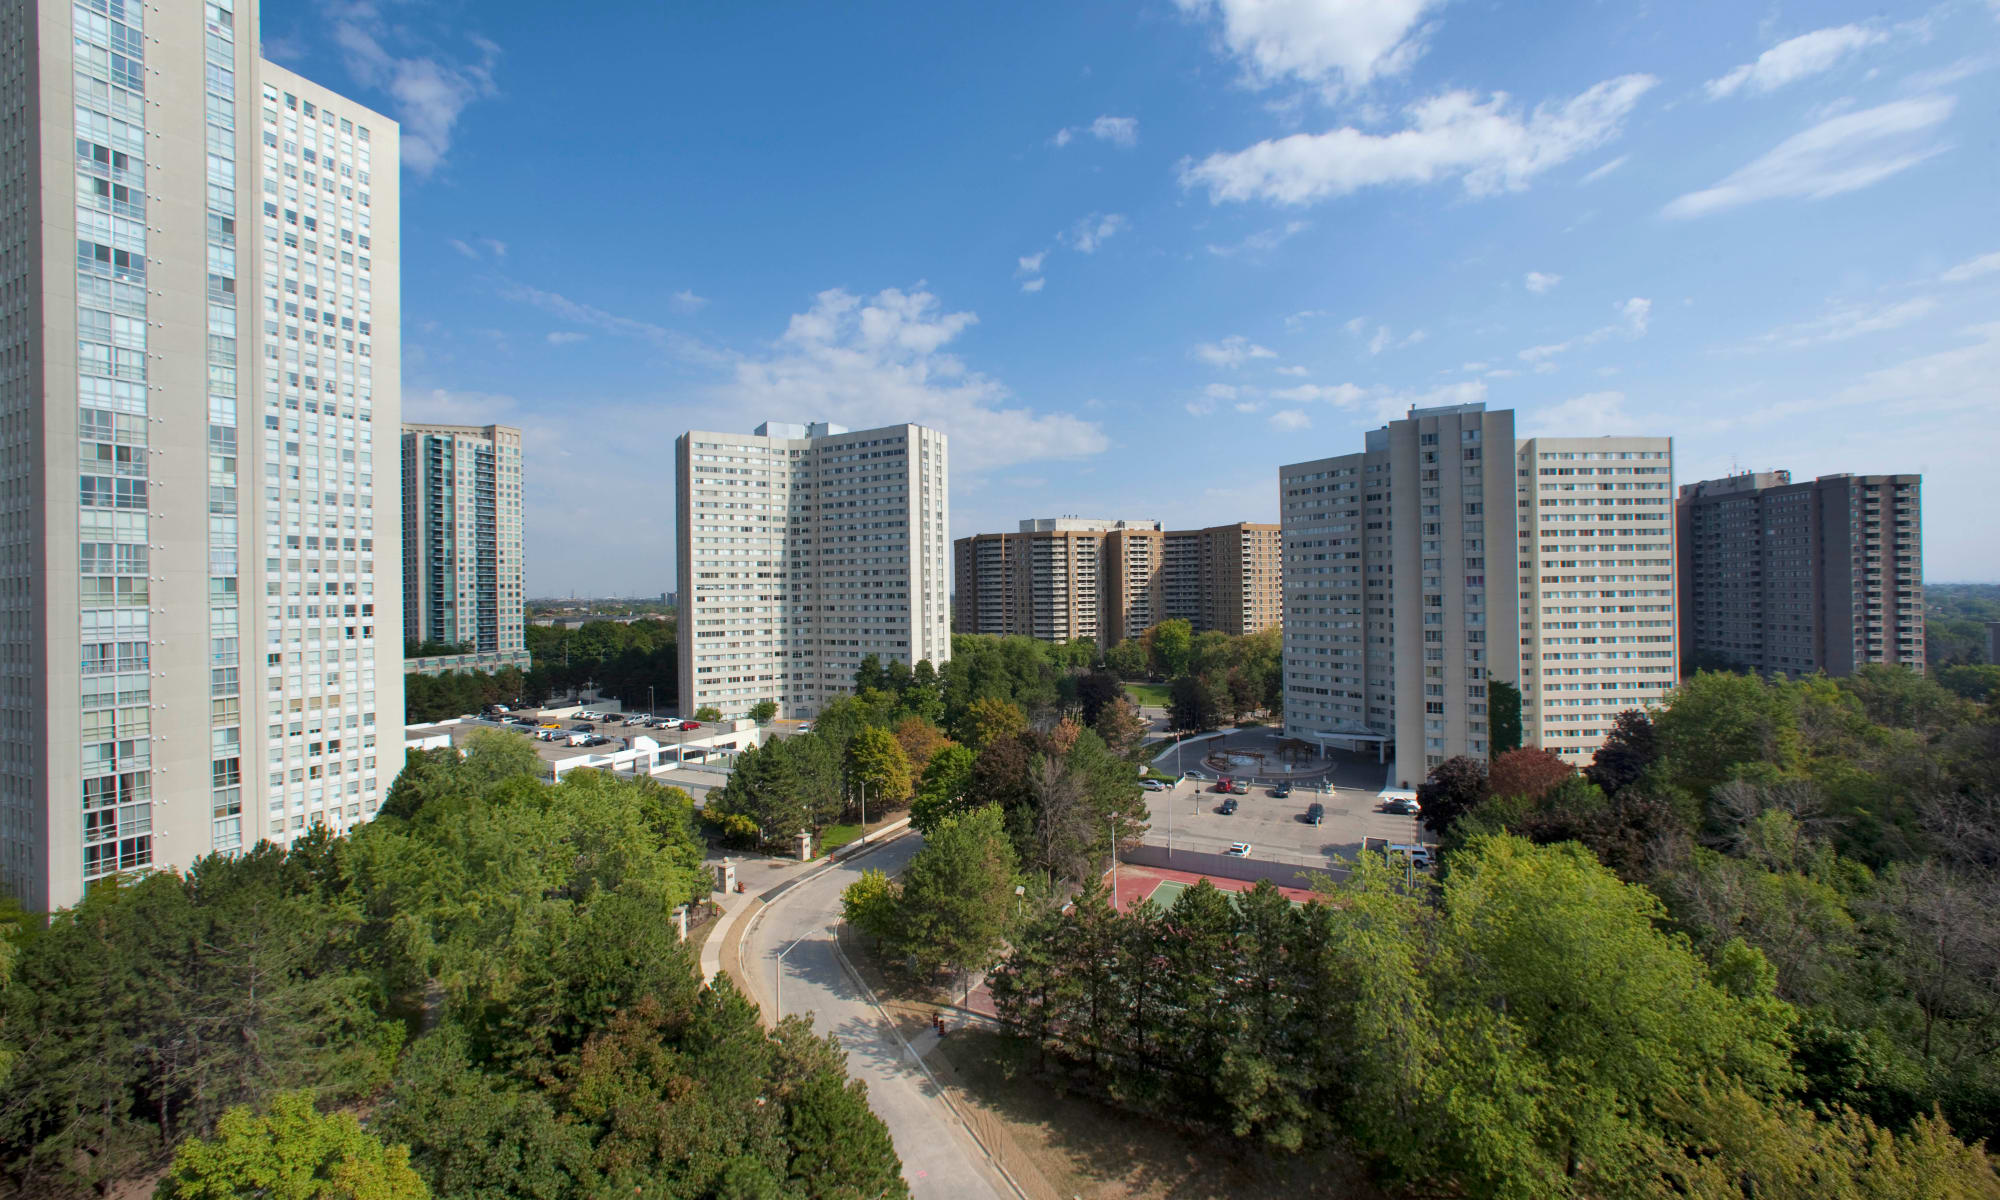 Apartments for rent in fairview mississauga on - One bedroom condo for rent mississauga ...